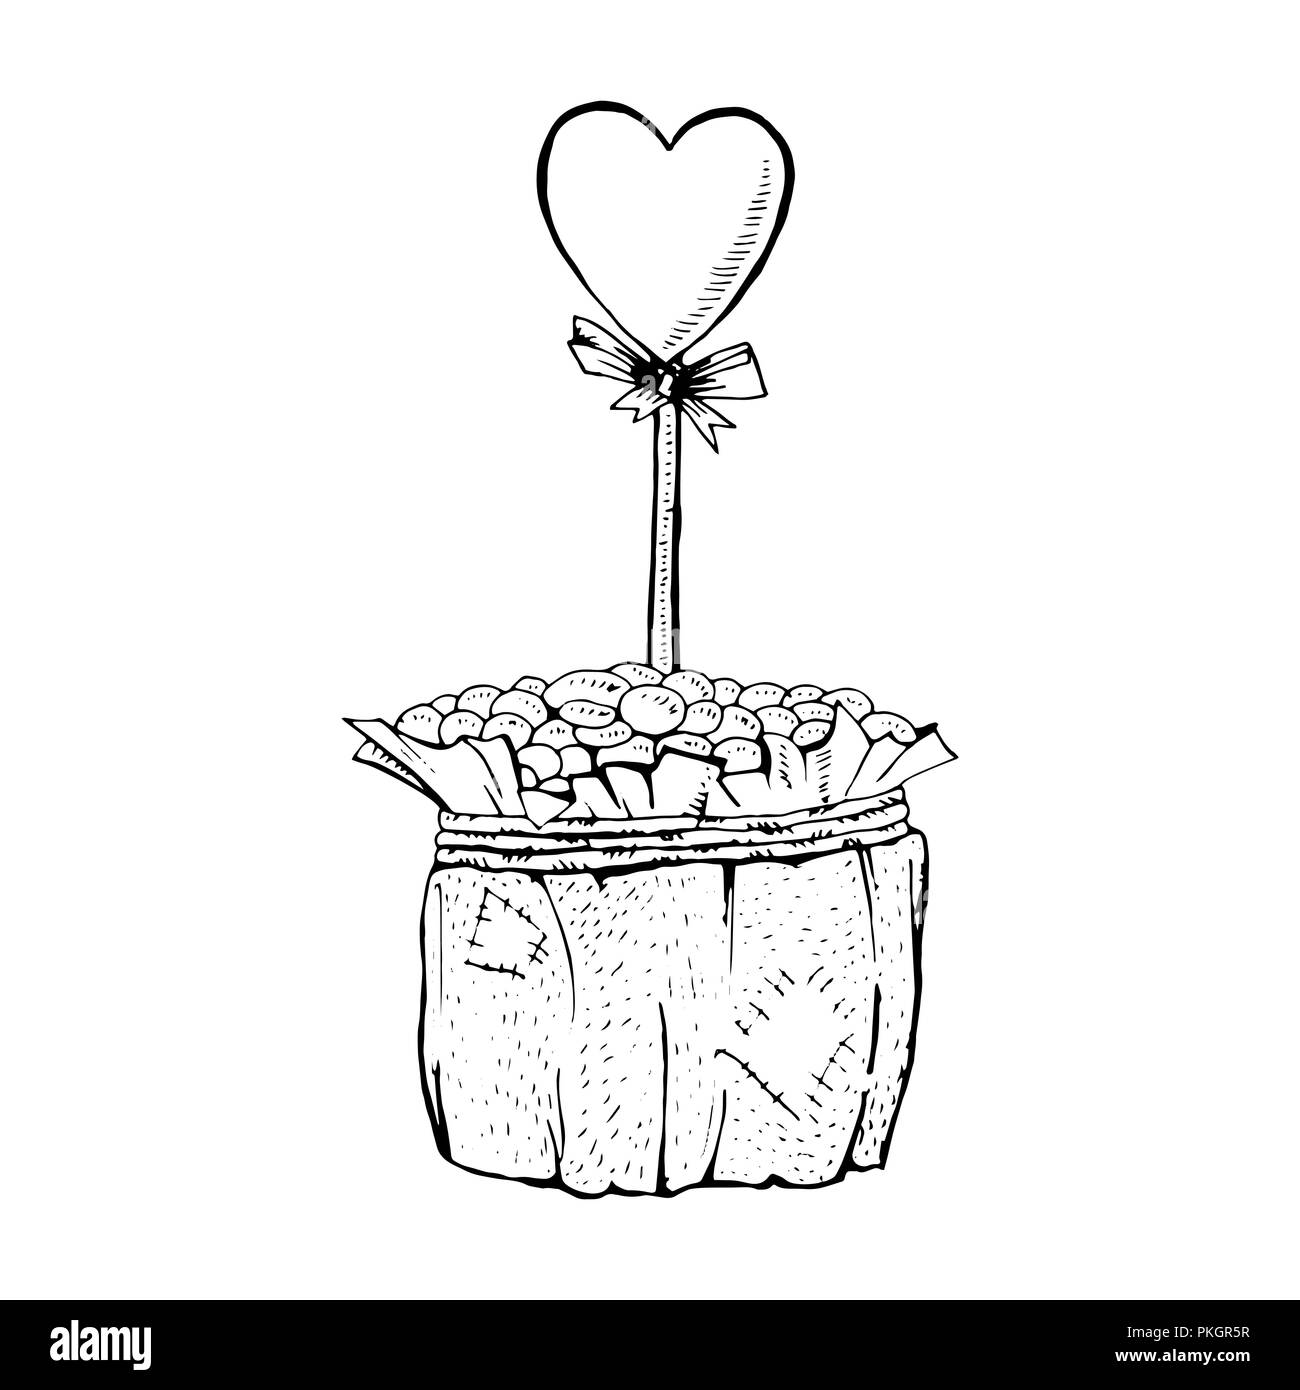 Coffee pot with heart on stick sketch monochrome illustration handmade coffee beans pot with